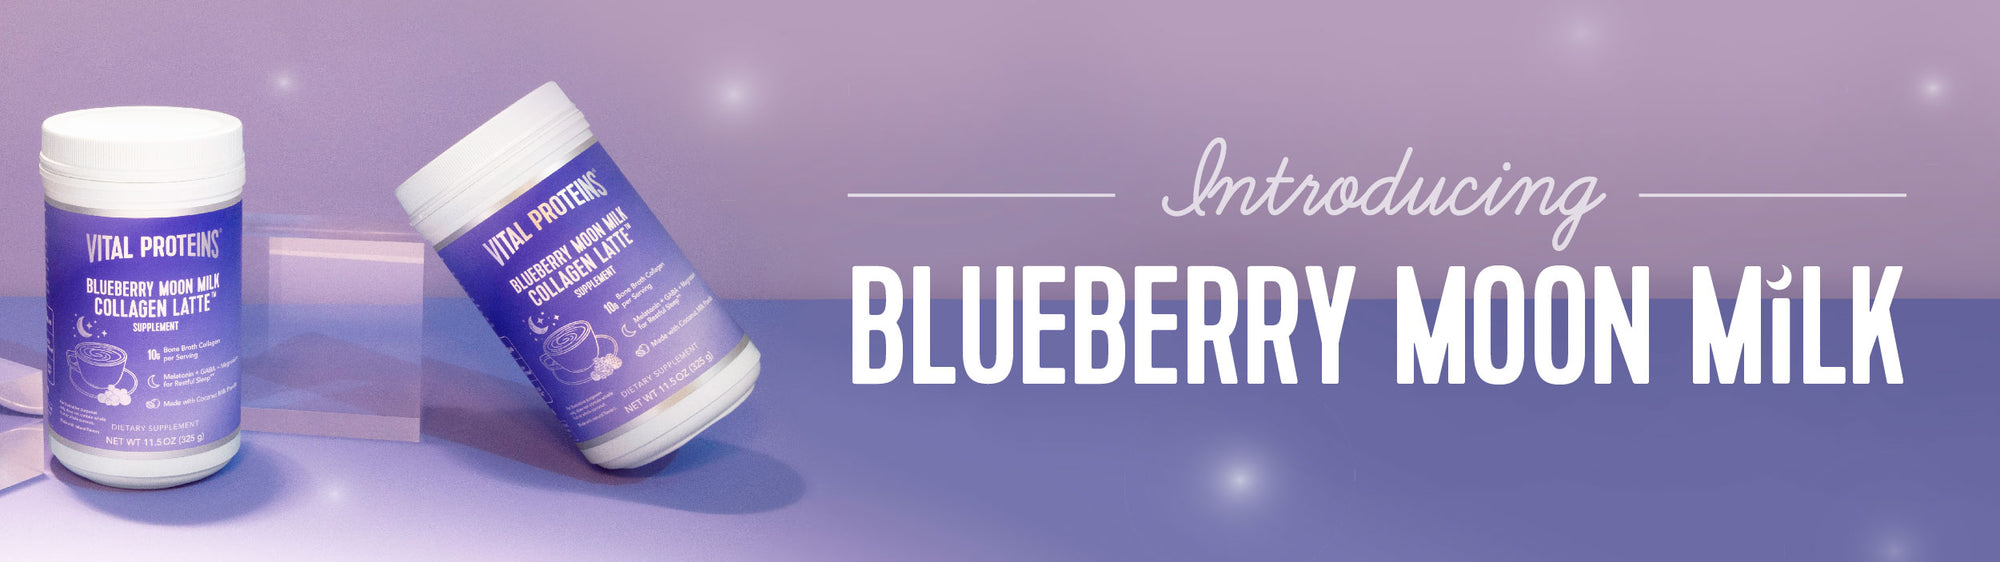 A new flavor, a new phase of the moon. Introducing Blueberry Moon Milk.